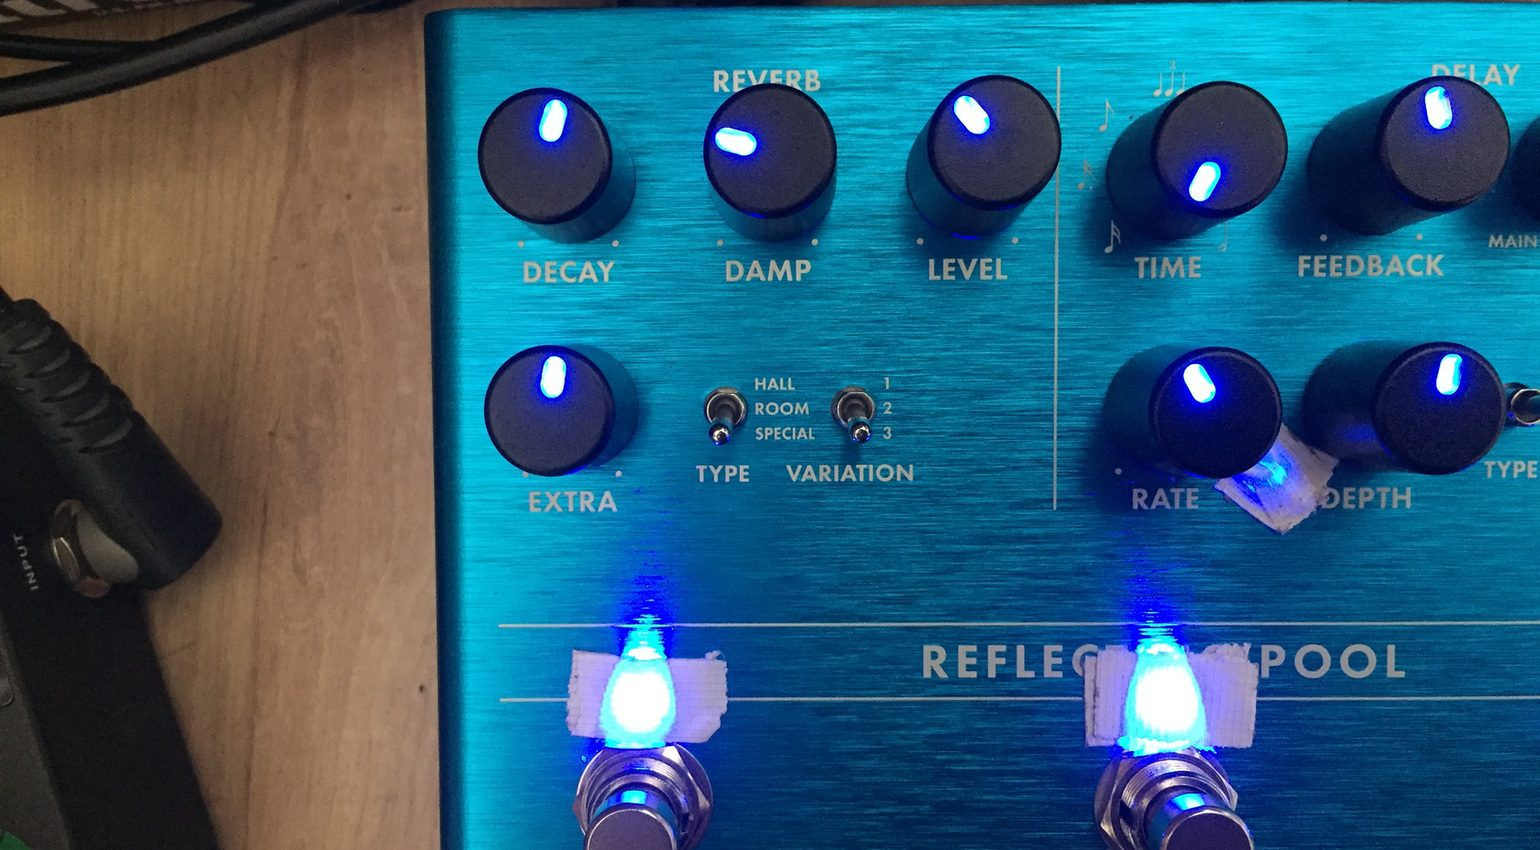 Fender Reflecting Pool Reverb Delay Effekt Pedal Reverbeffekt